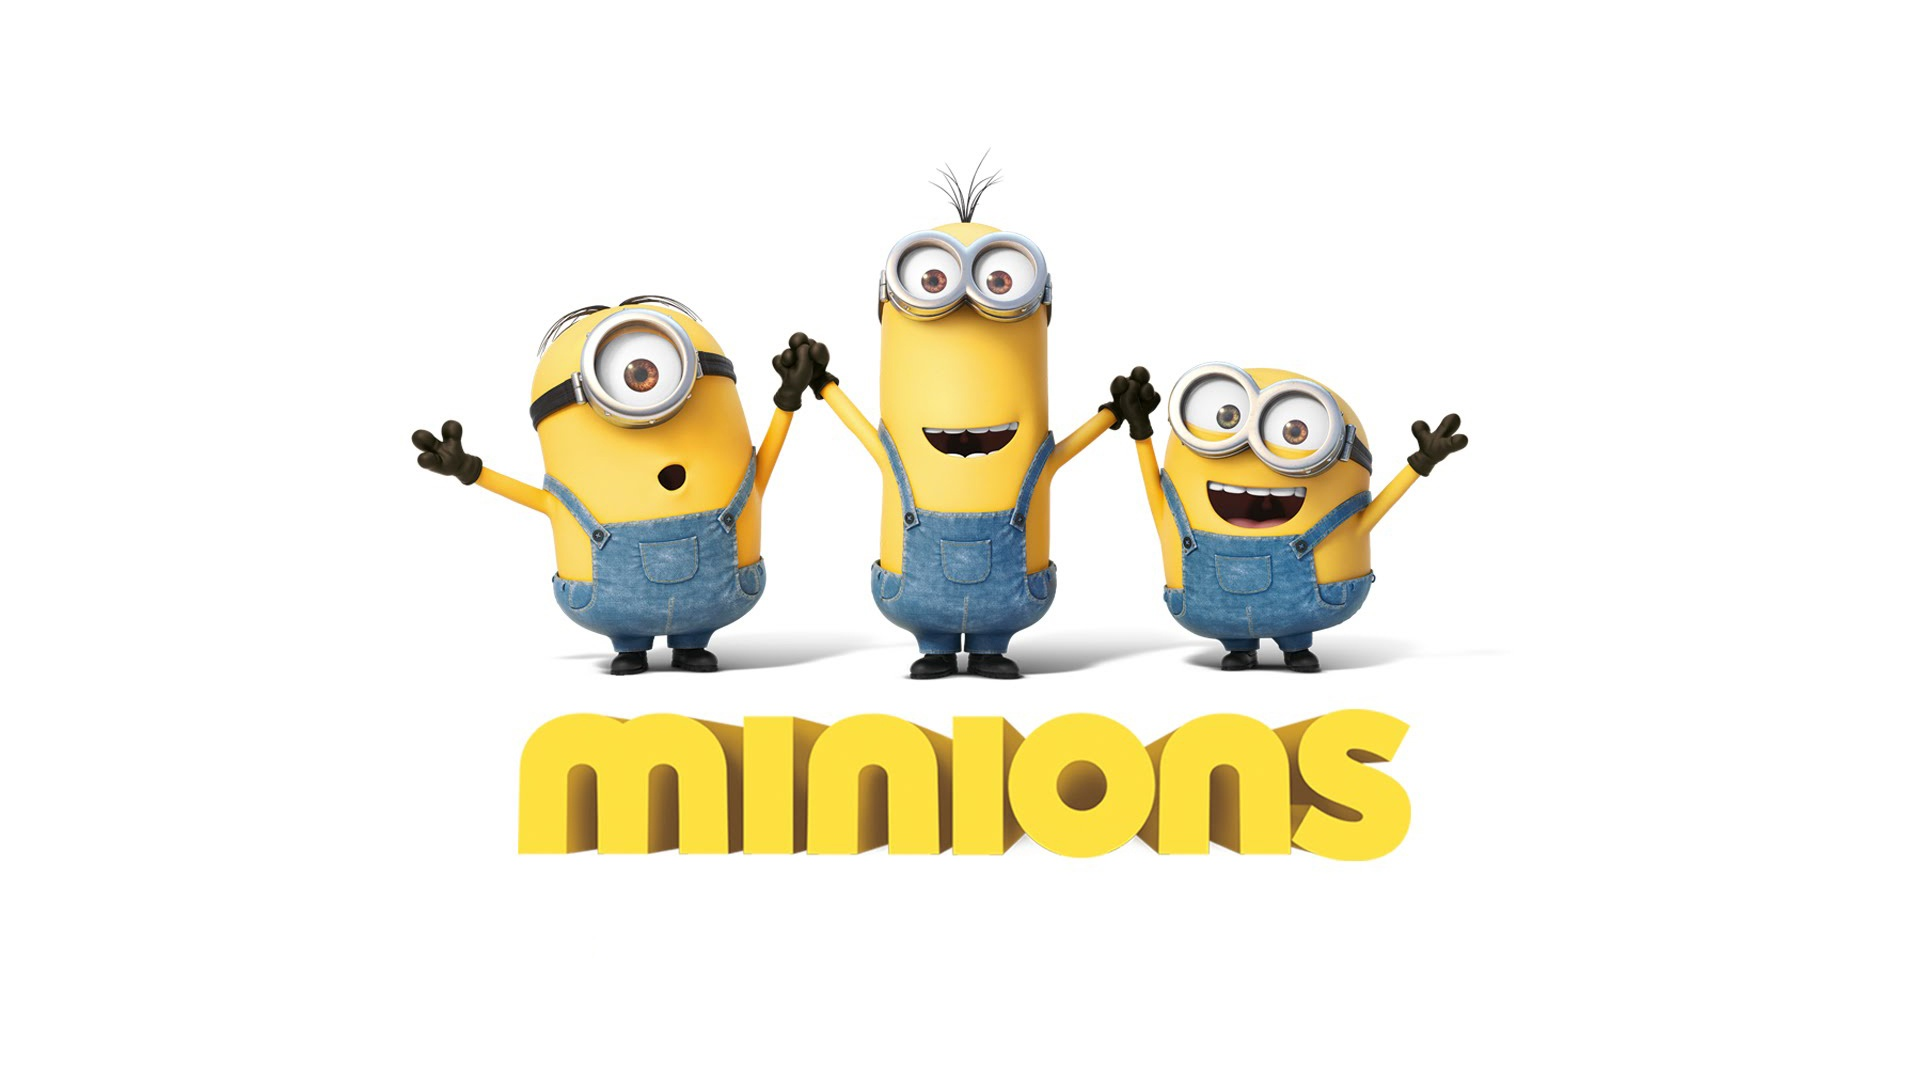 best-ideas-about-Minion-on-Pinterest-Cute-minions-wallpaper-wpc580162